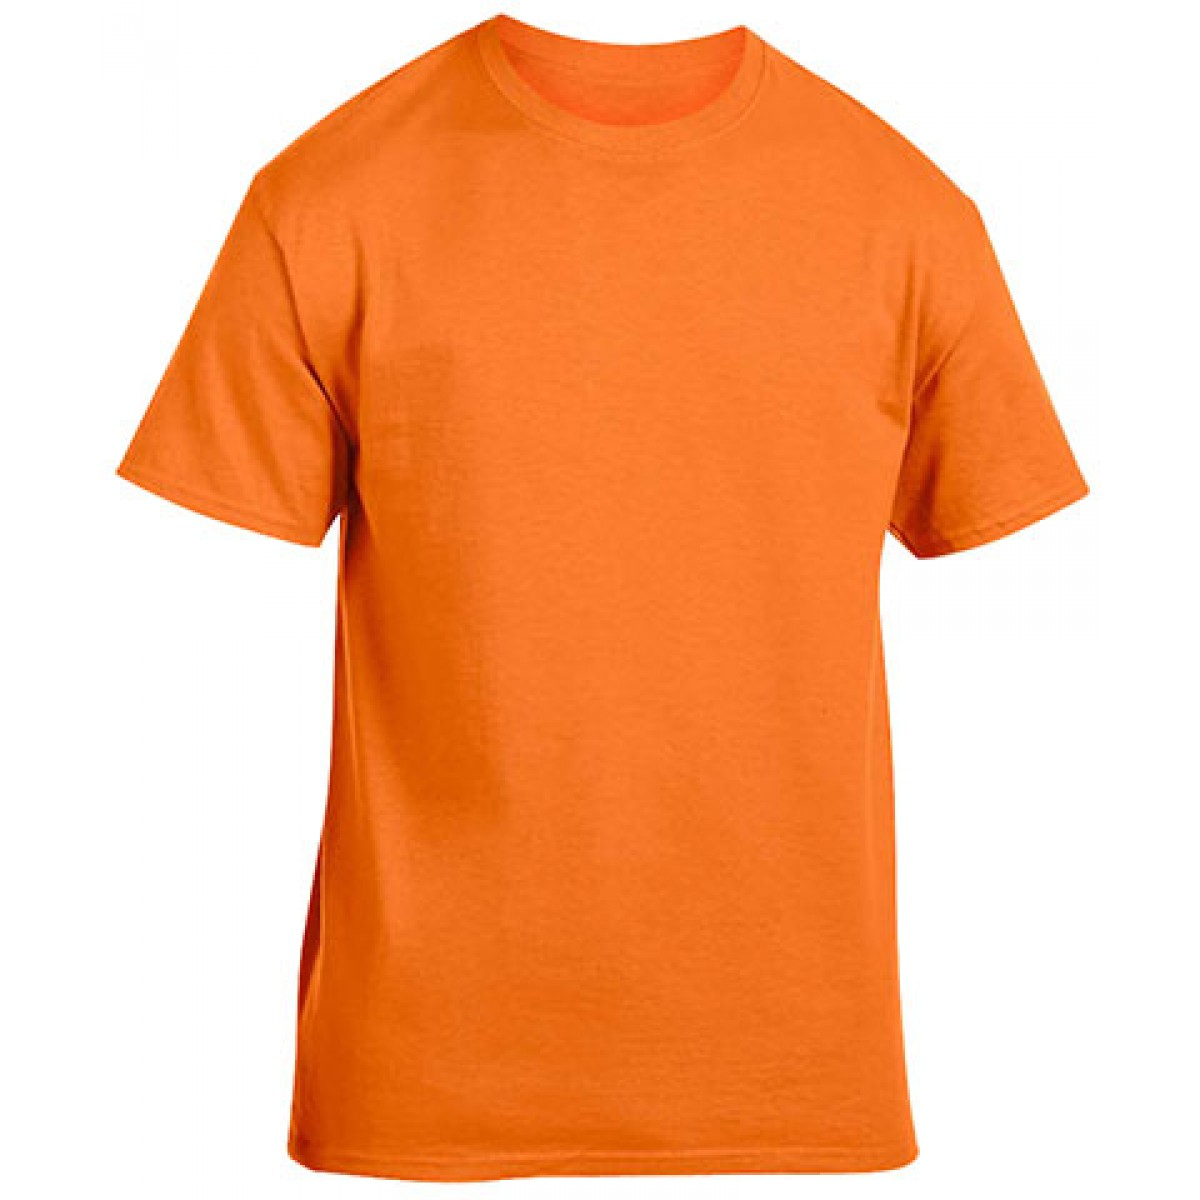 Cotton Short Sleeve T-Shirt-Safety Orange-YL